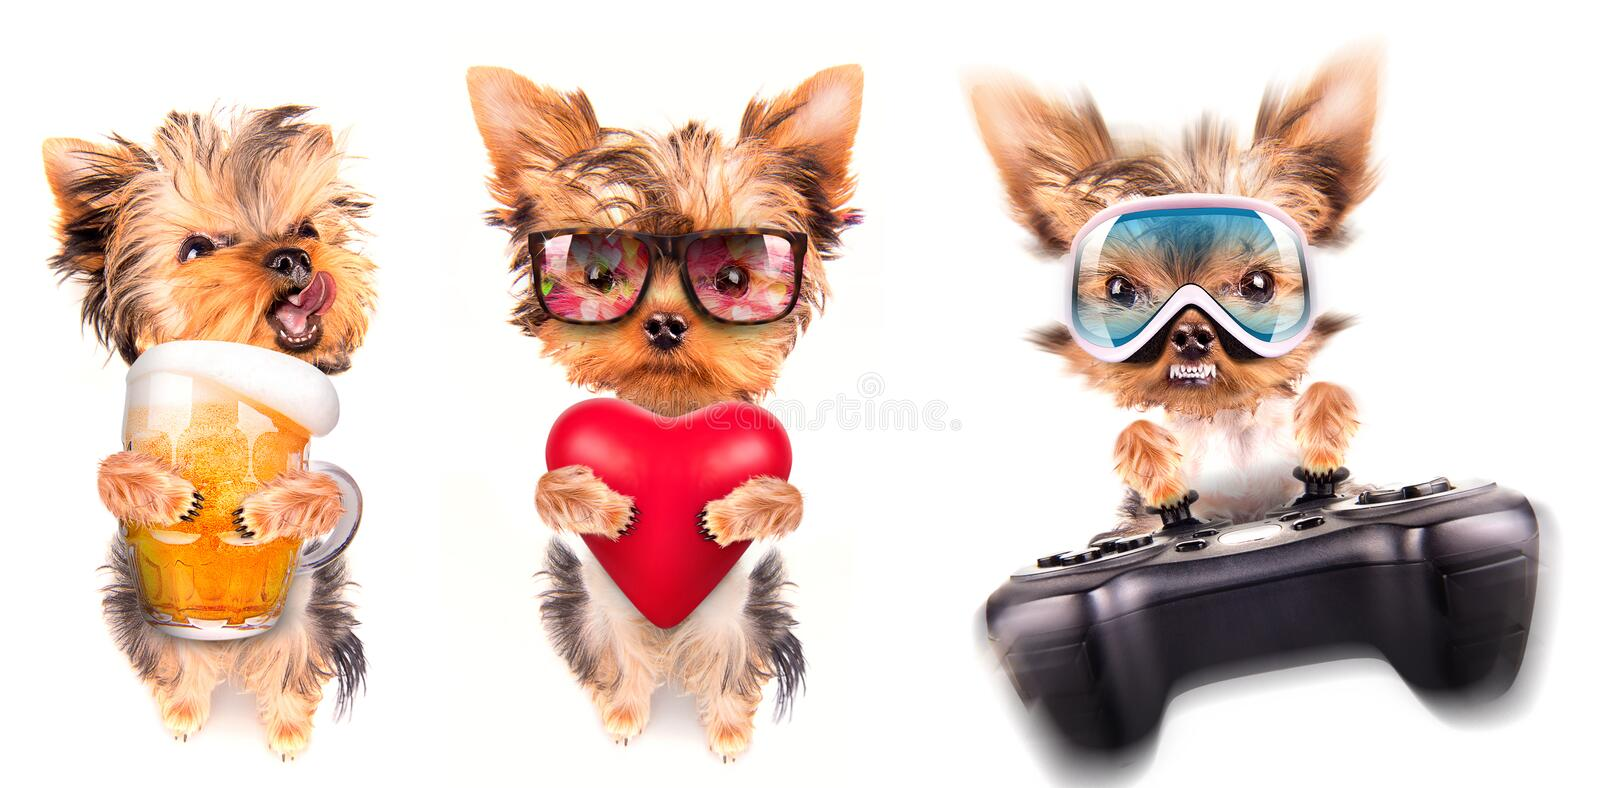 Dog with beer, game pad and lover. Valentine royalty free stock image